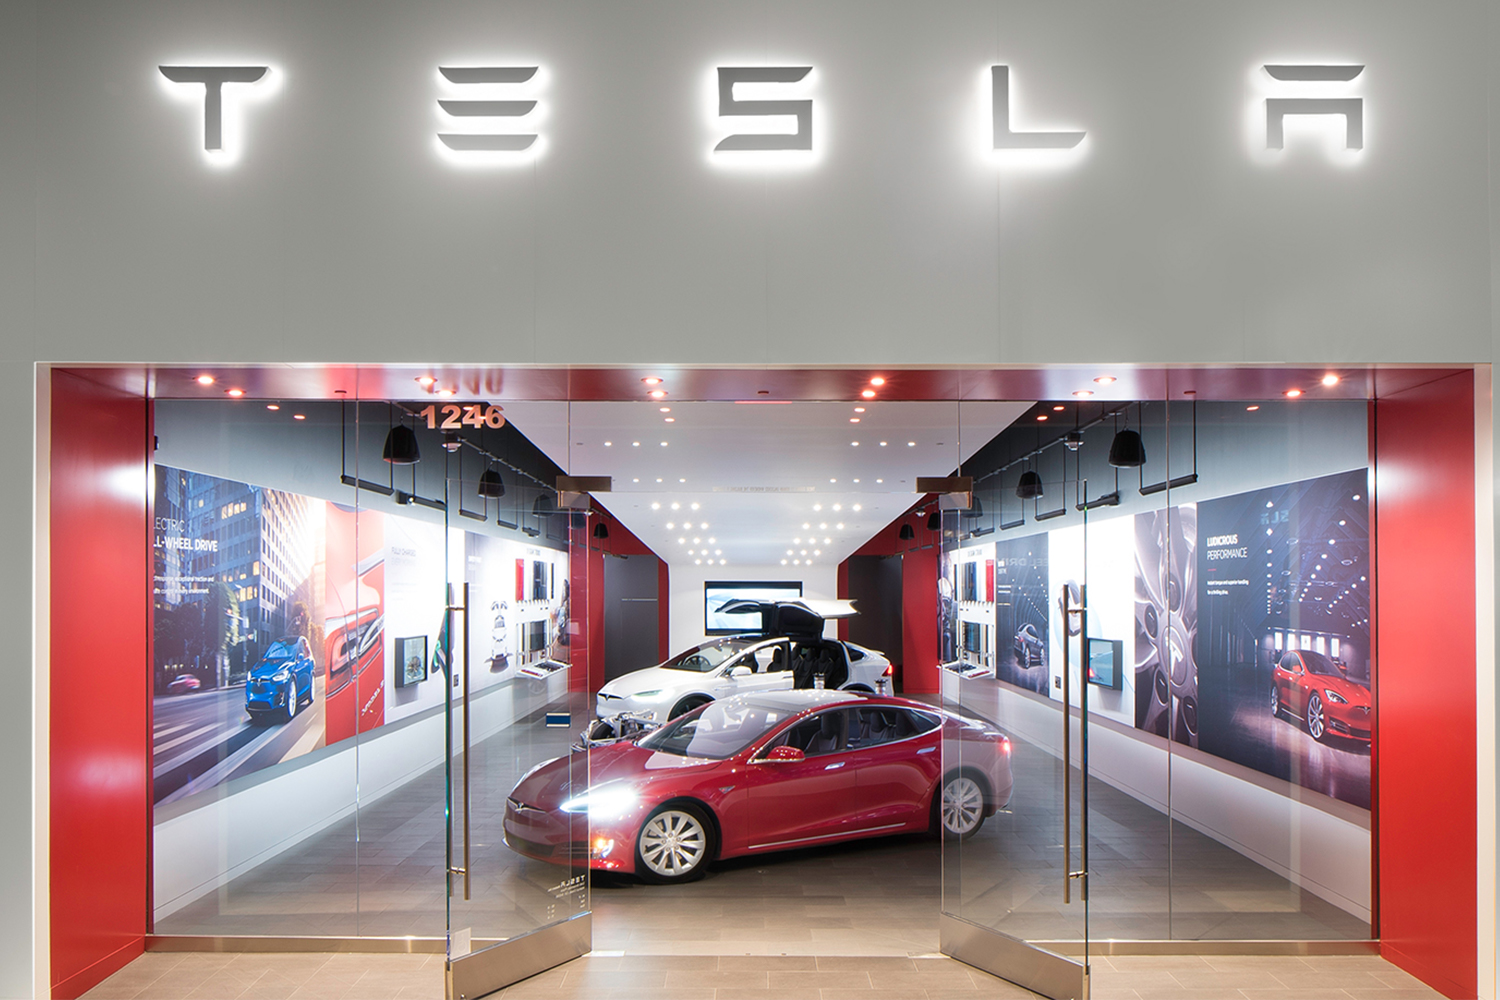 Tesla electric vehicle storefront in Walnut Creek